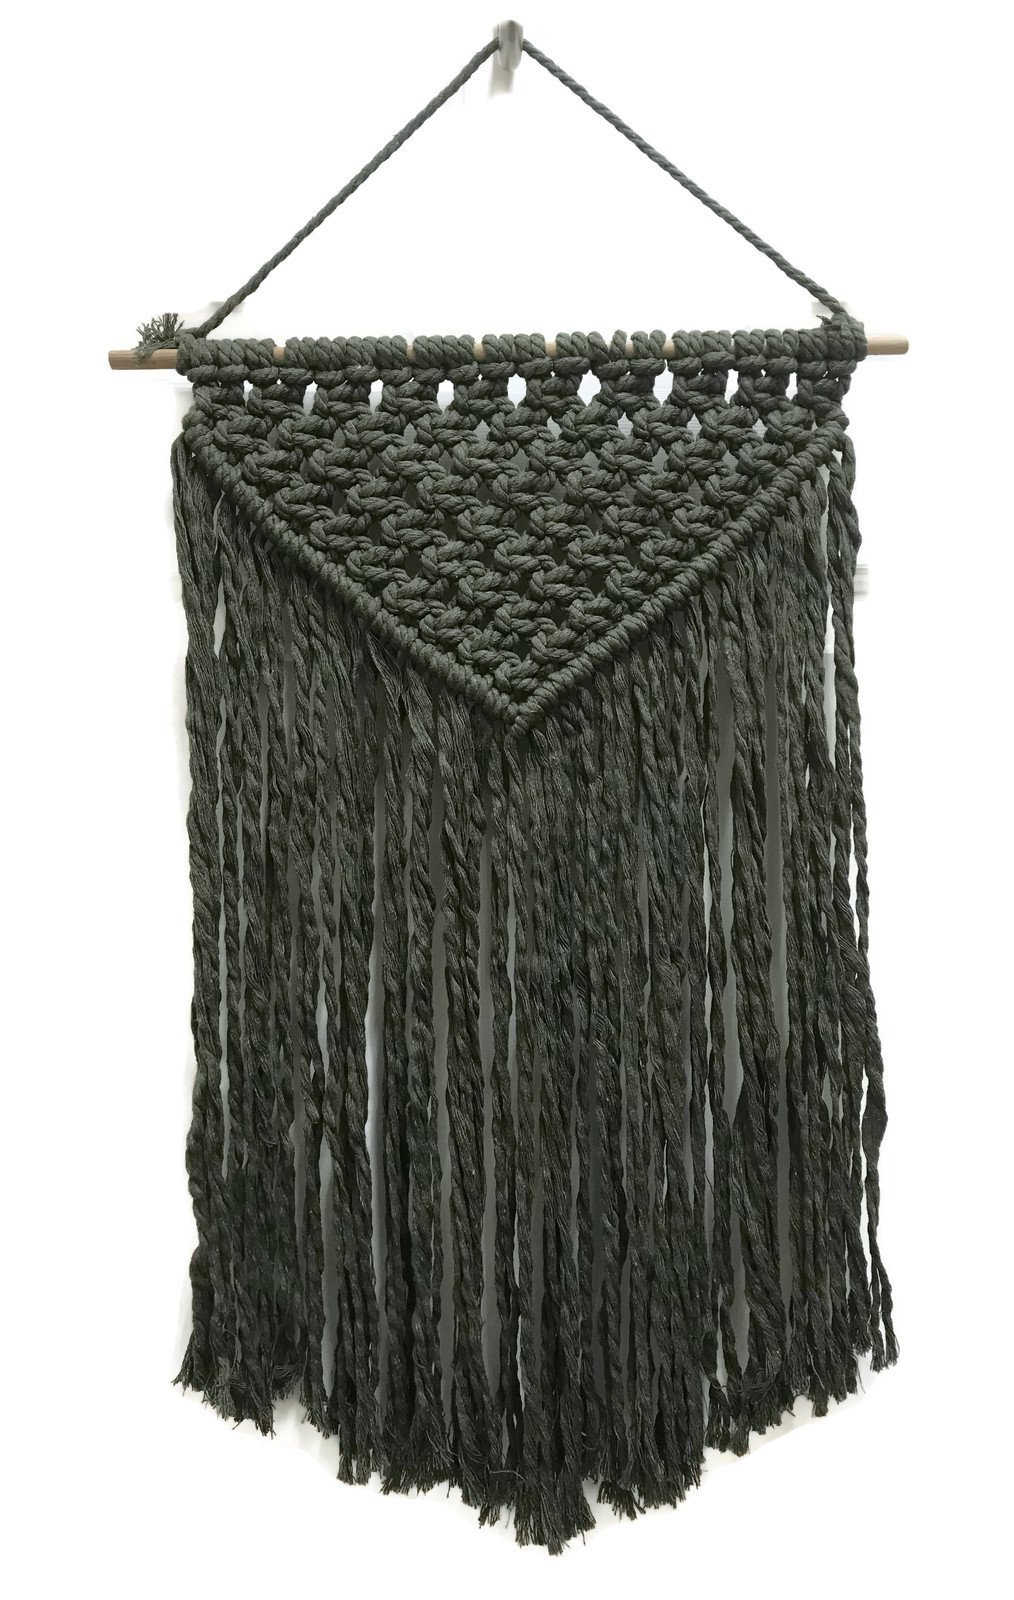 Cheerful with Color Macrame Wall Hanging :: 100% Pure Cotton Boho Wall Decor for Living Room, Bedroom & Kitchen :: Includes Wood Dowel & Hanging Cord, 13.5'' Wide x 23.5'' Long, Olive Green